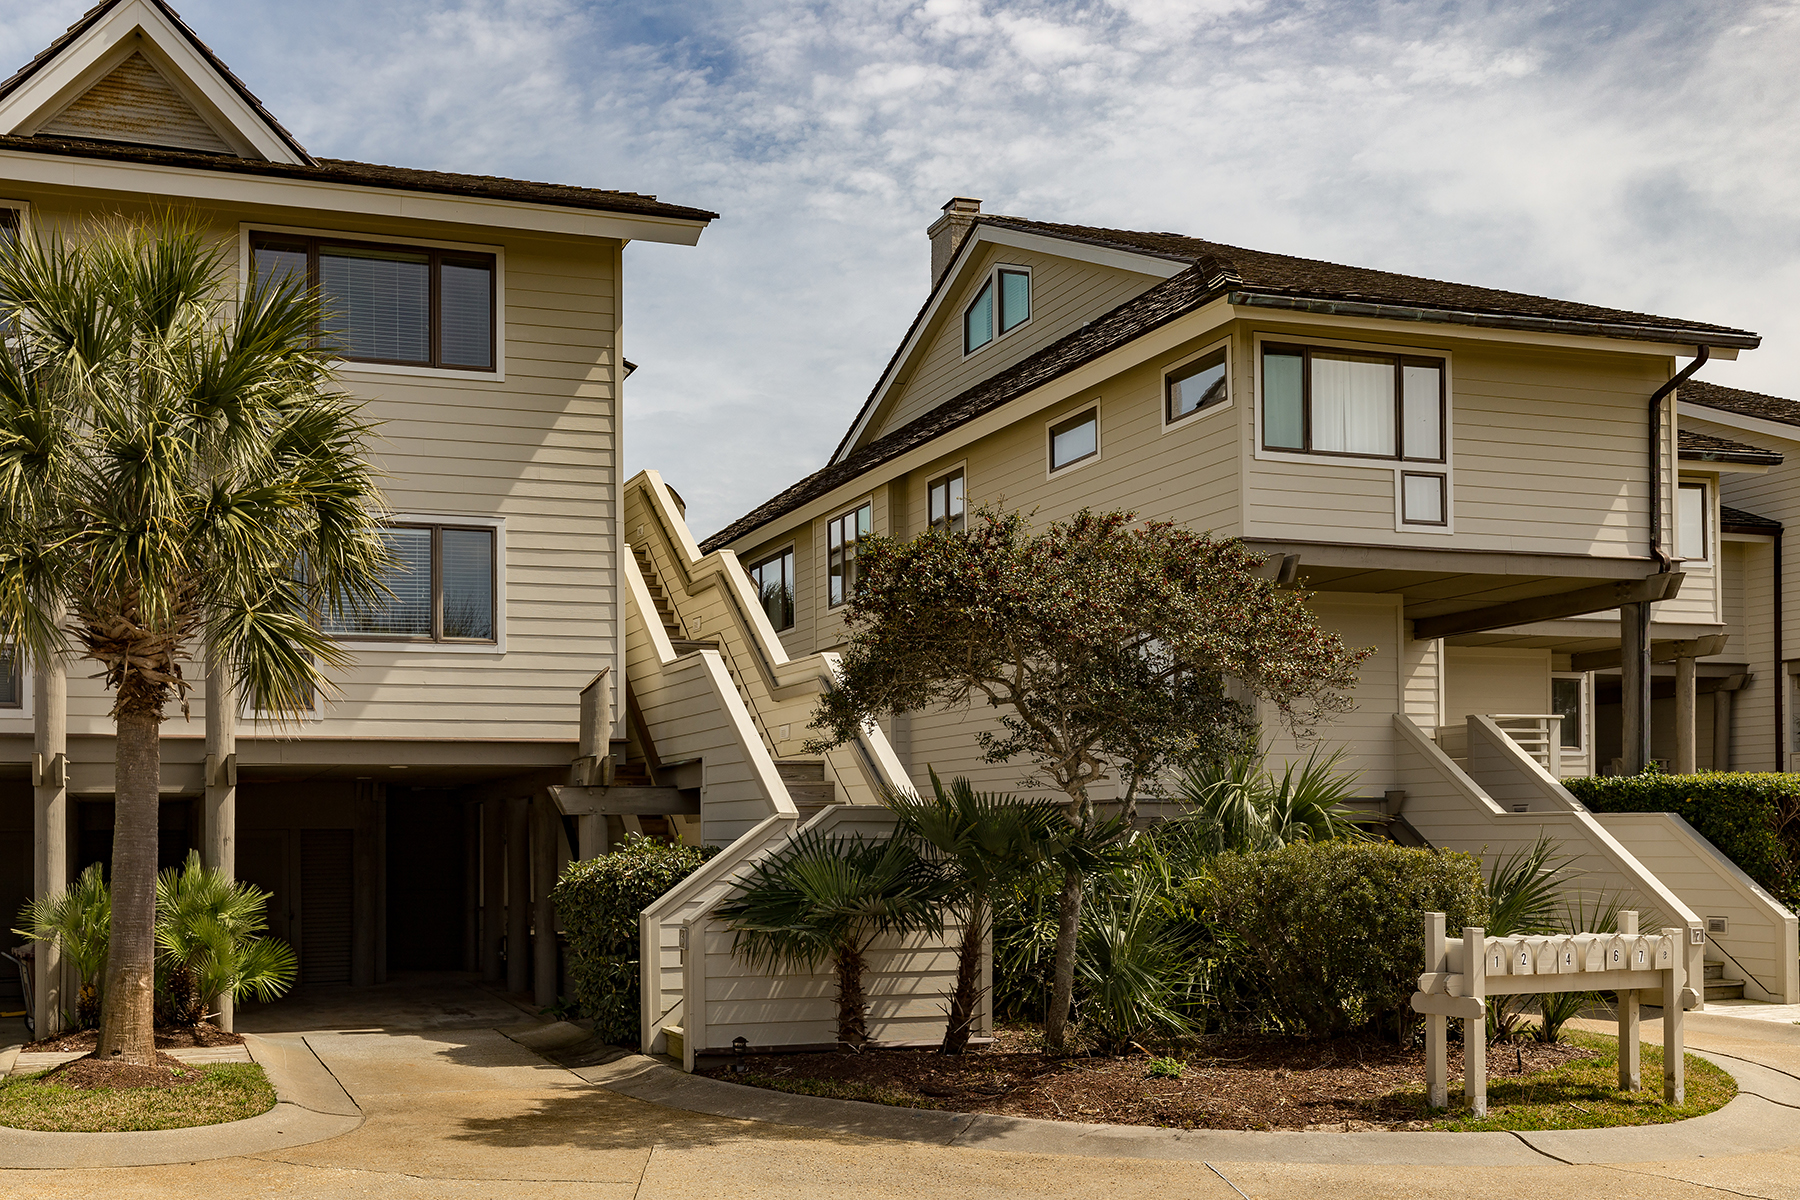 Condominium for Sale at 1059 Debordieu Blvd. 1059 DeBordieu Blvd Unit 5 Georgetown, South Carolina, 29440 United States